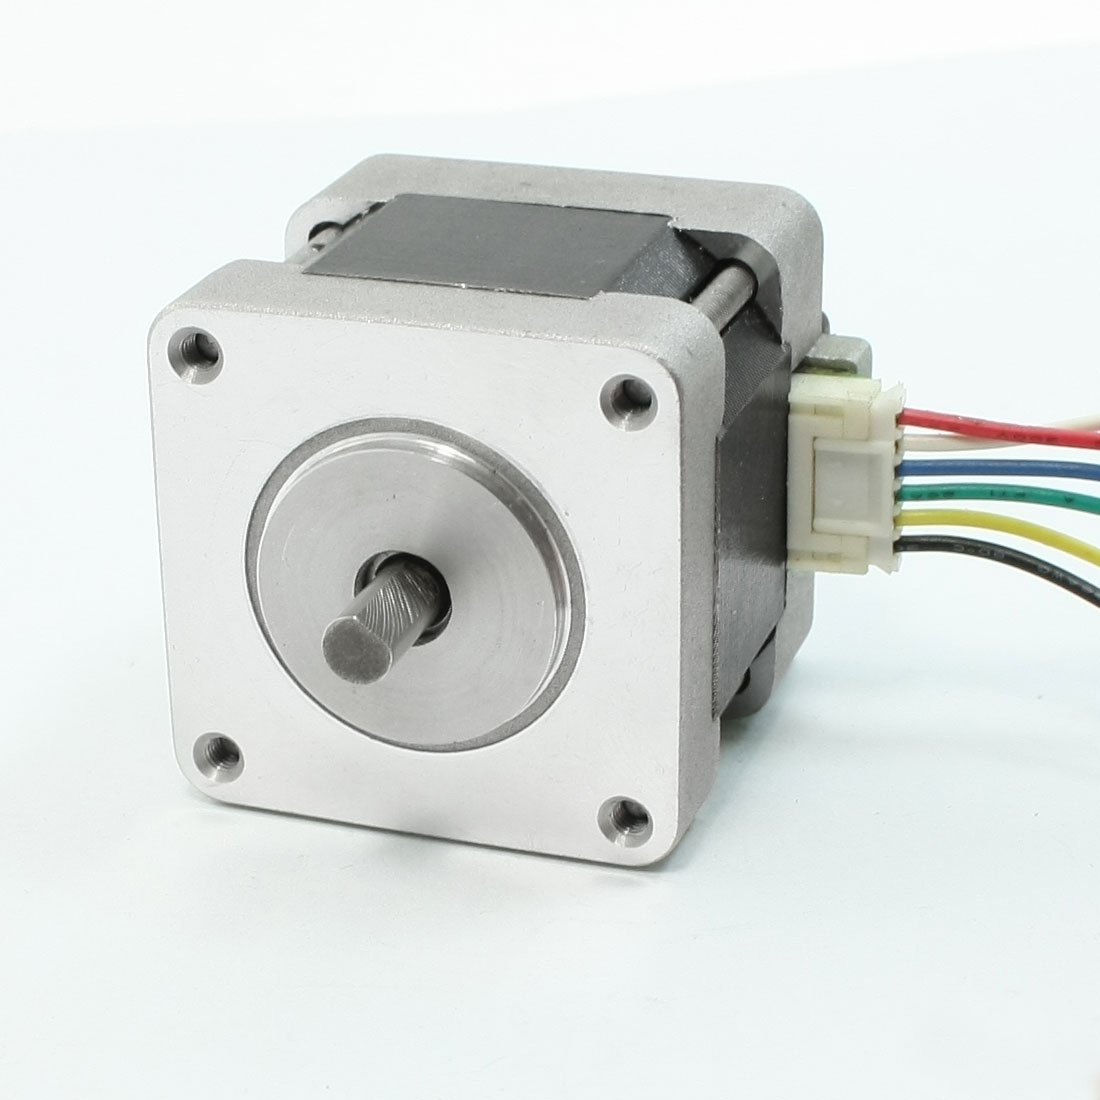 1000RPM Rotary Speed 0.8A 2kg.cm Torque 6 Wire 5mm Drive Shaft Stepping Motor